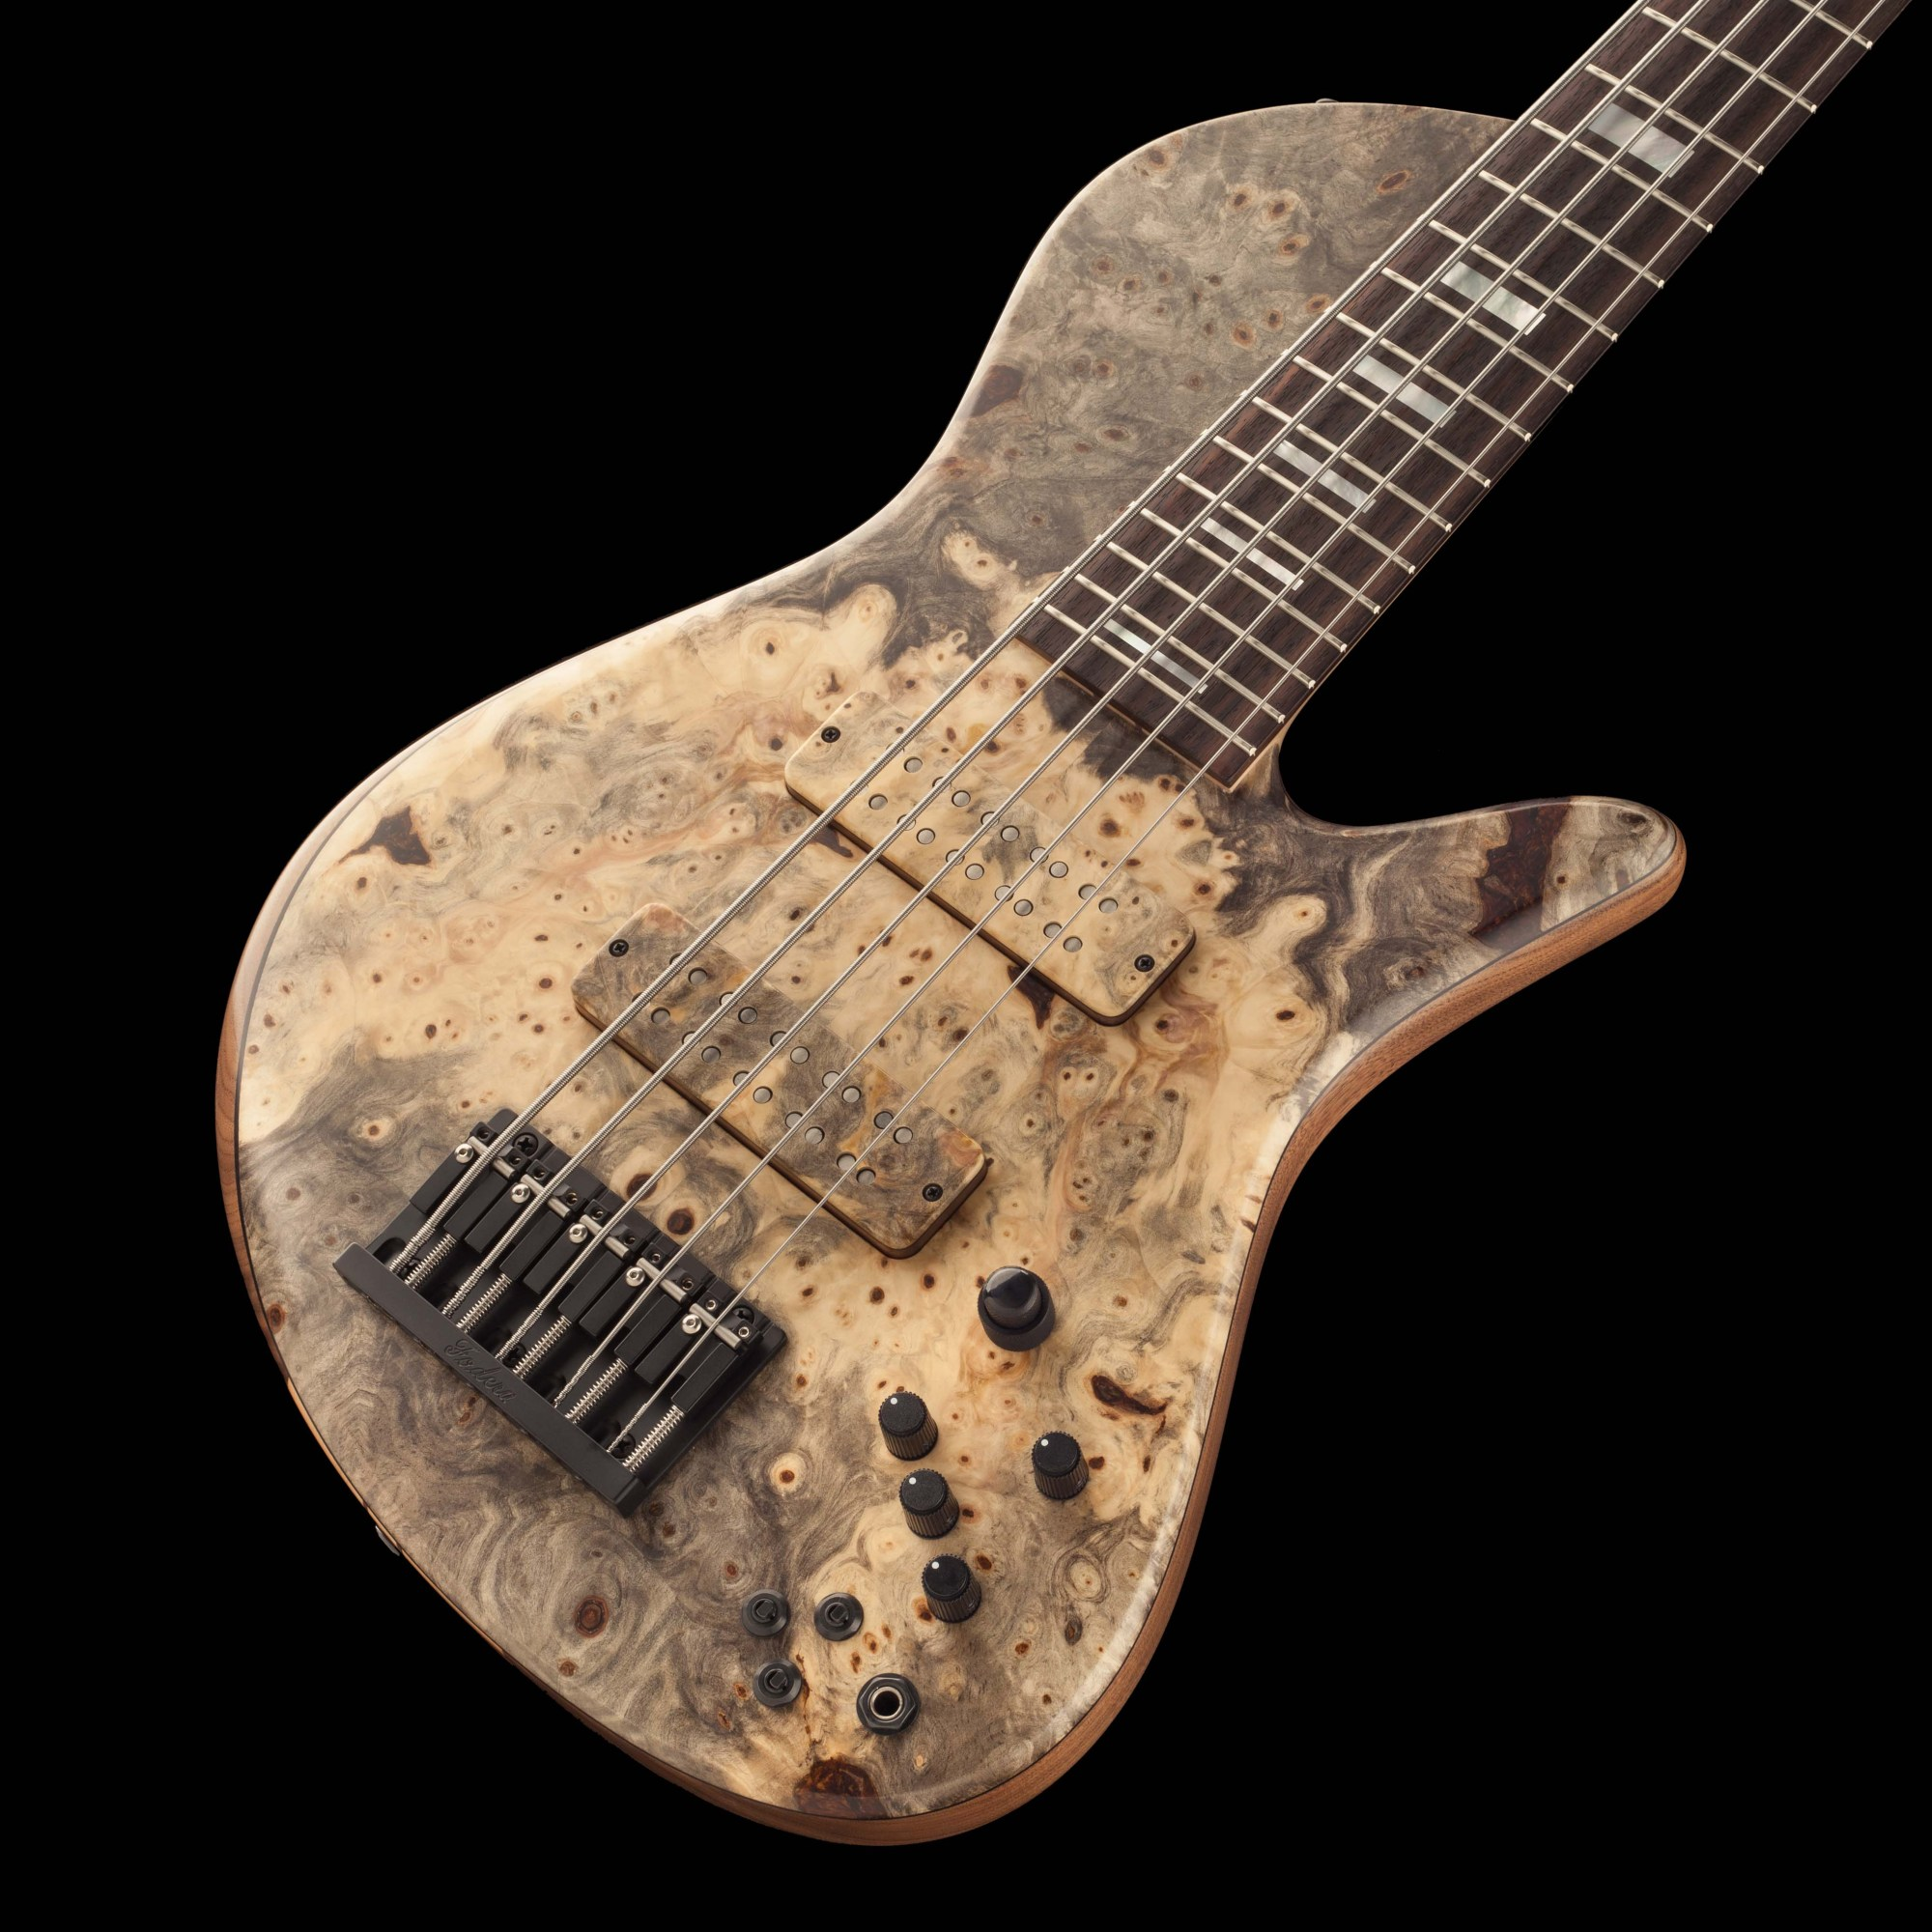 hight resolution of  your custom bass guitar build after submitting your specs a member of our team will contact you personally to further discuss your build and help you